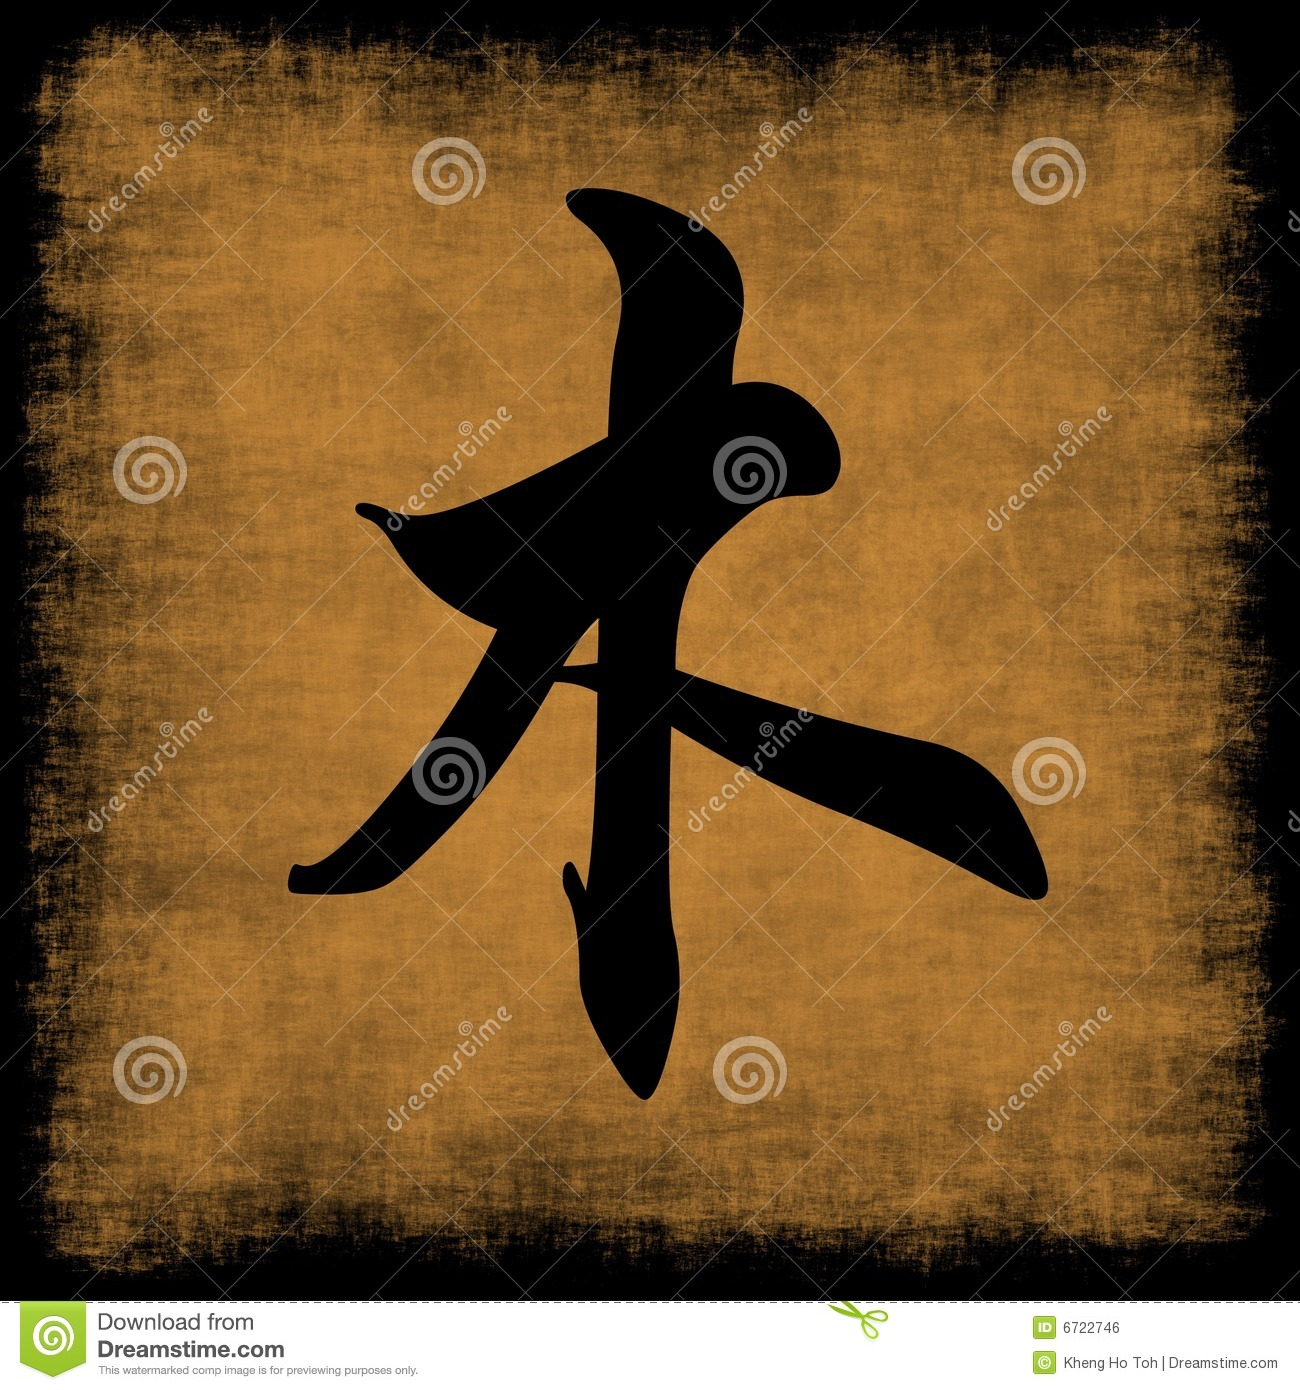 Wood Chinese Calligraphy Five Elements